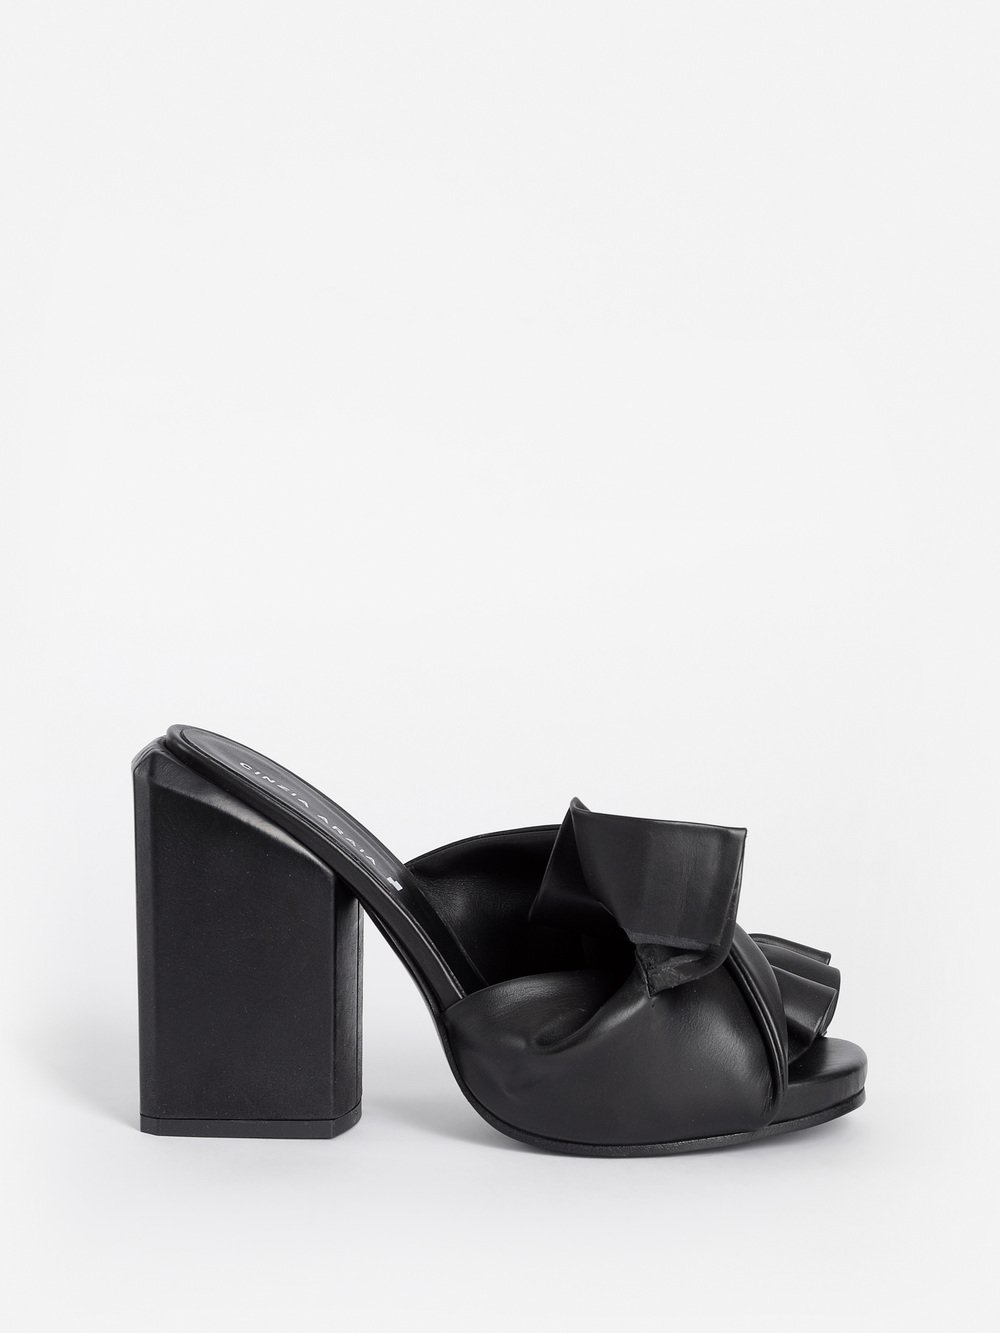 Image of Cinzia Araia Sandals